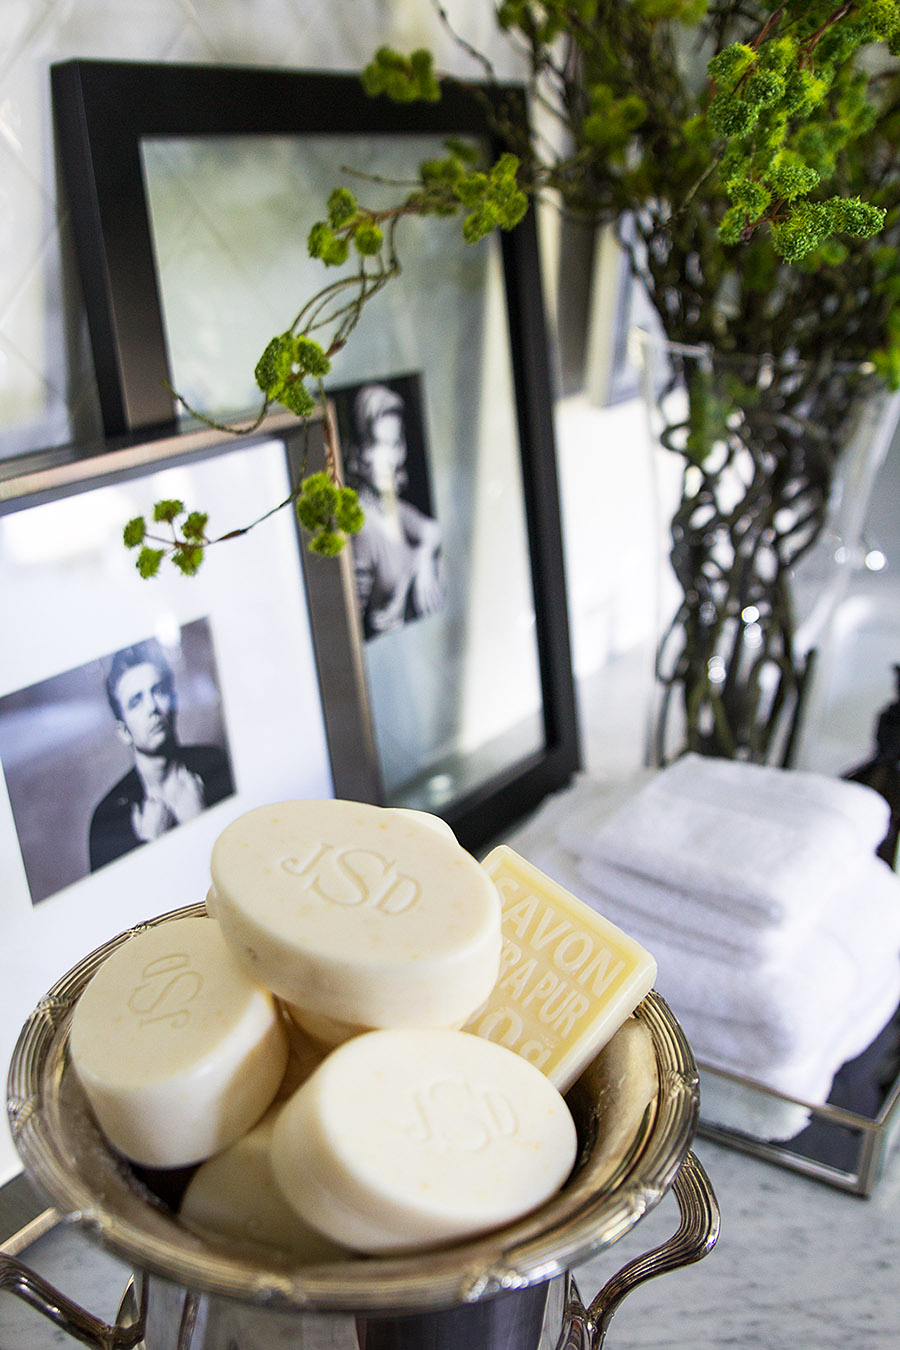 Monogrammed Soaps - The Stiers Aesthetic